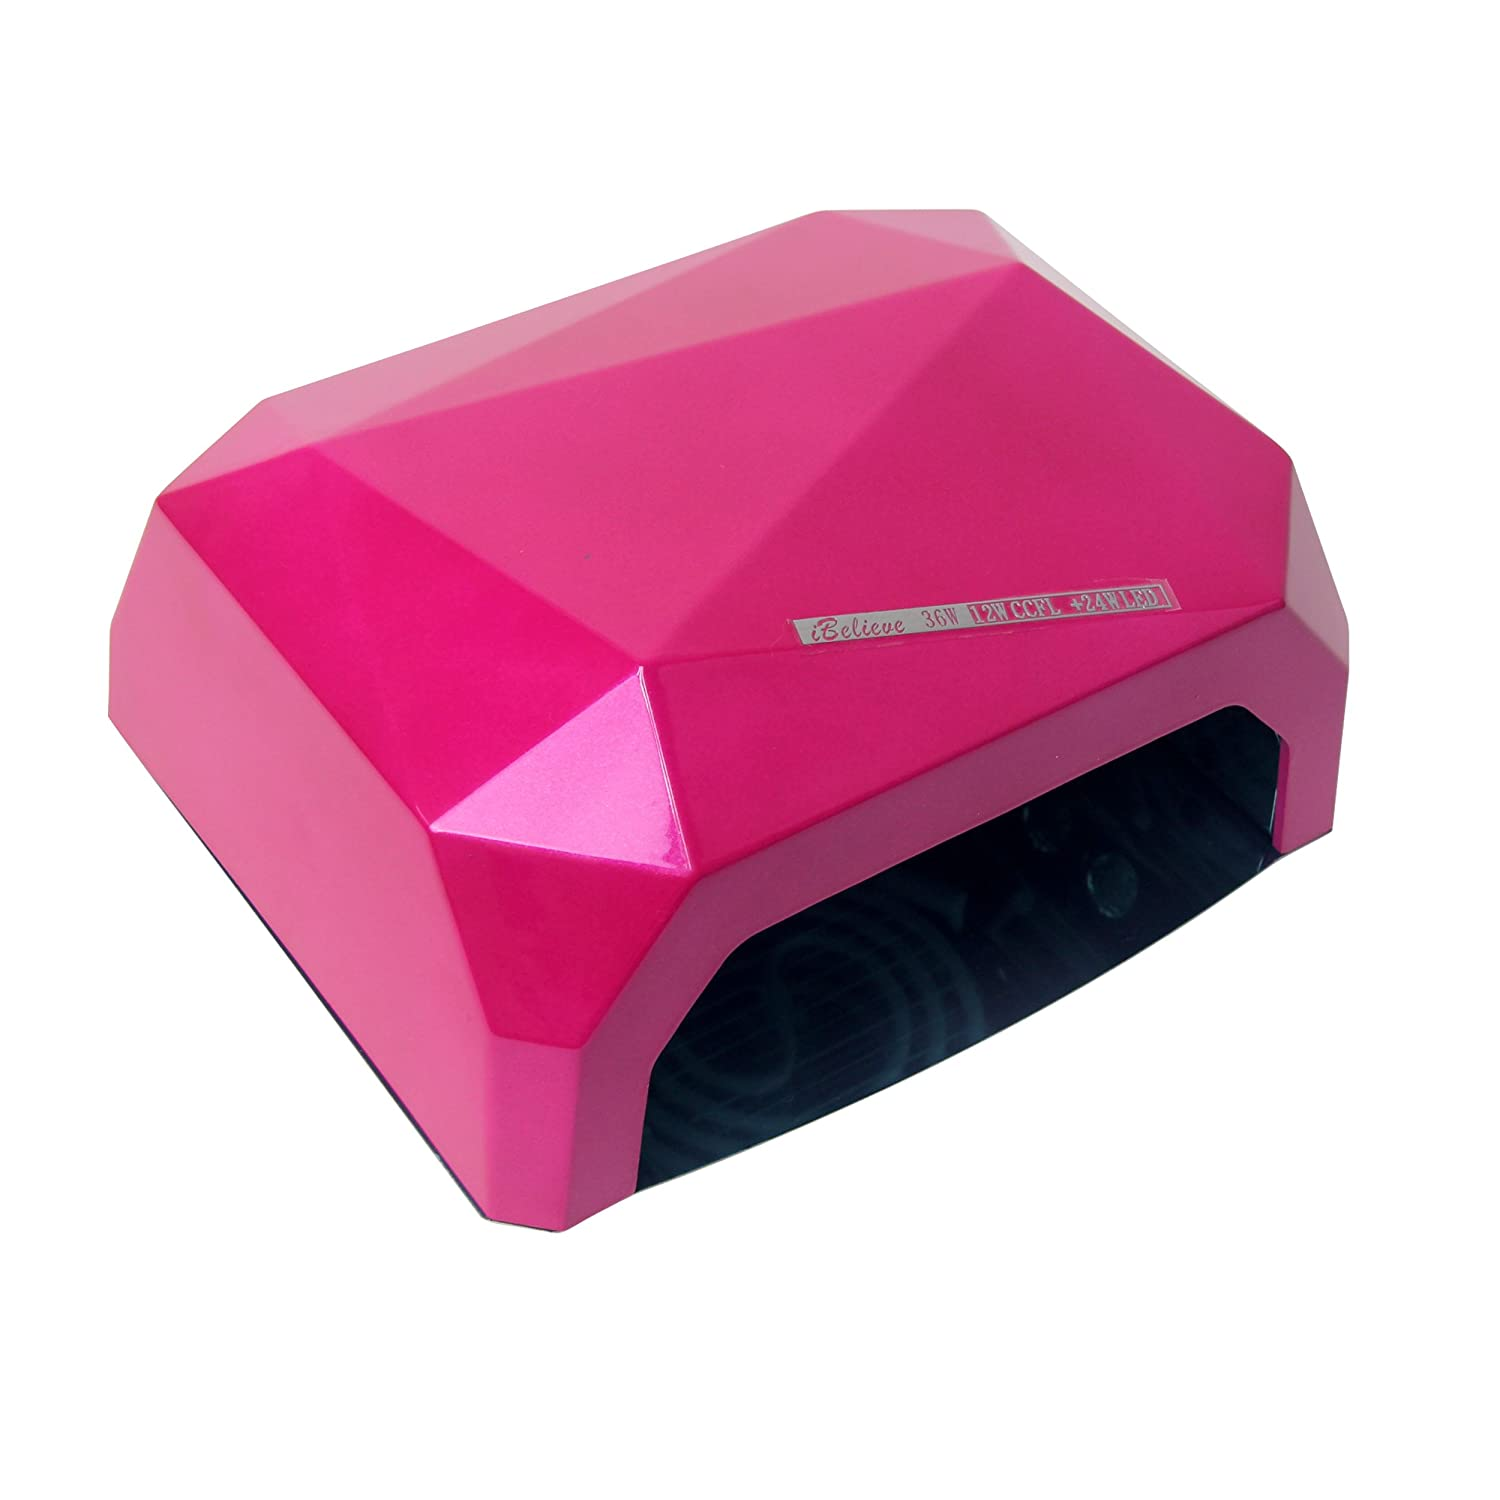 Signstek 36W LED UV Nail Dryer Gel Curing Lamp, 30S 60S 90S Fast Dry, for Home Use or Salon (Rose Red)